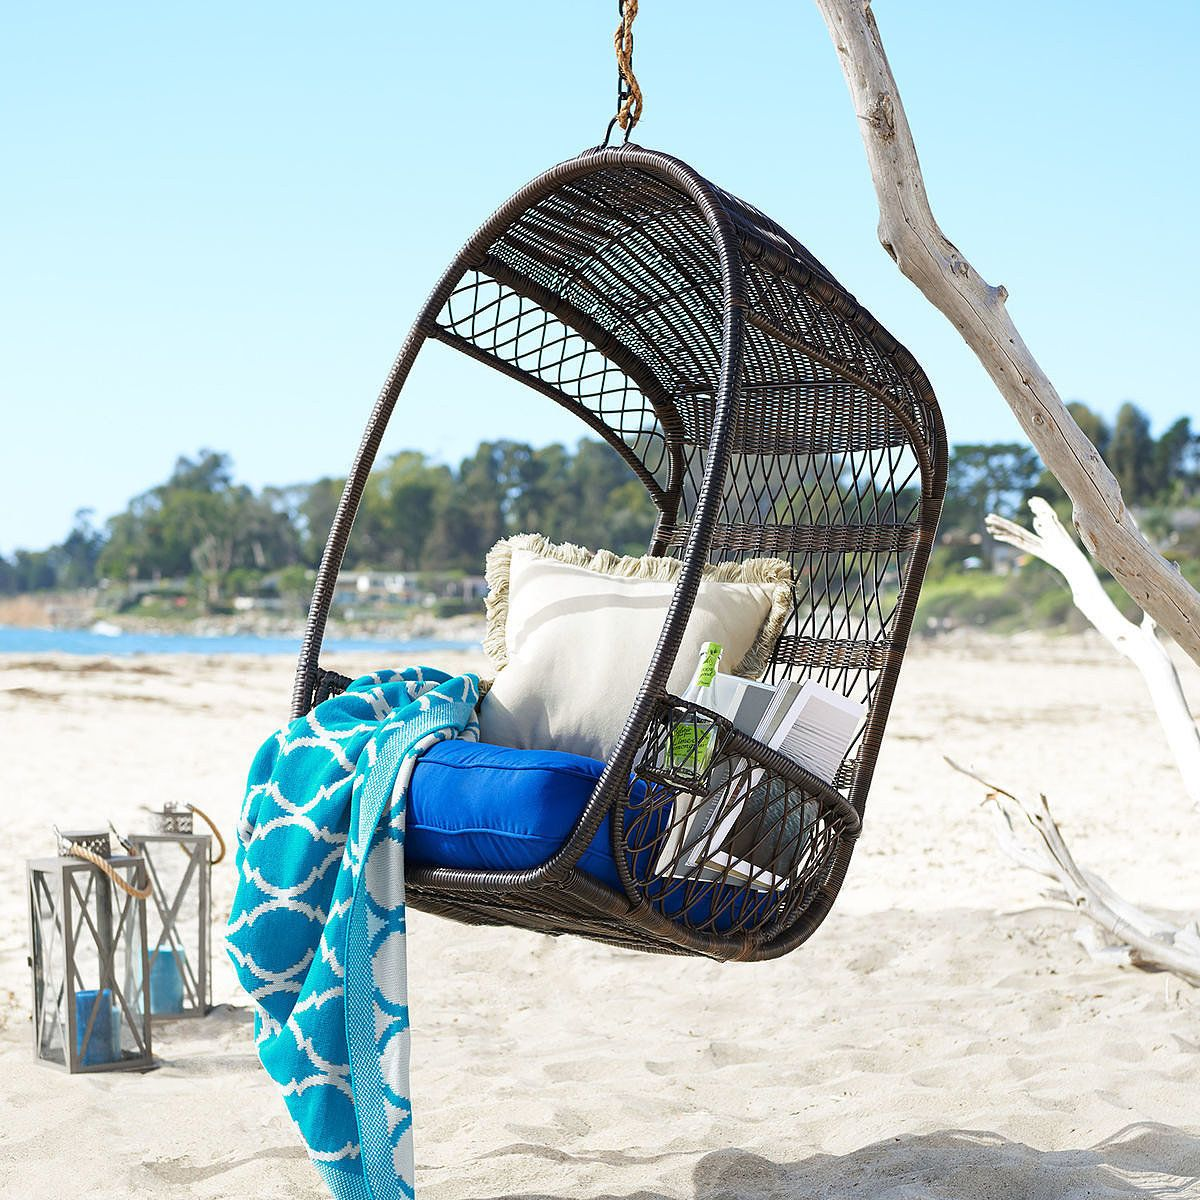 pier one hanging chair modern black dining chairs careful where you sit this popular 1 has been recalled